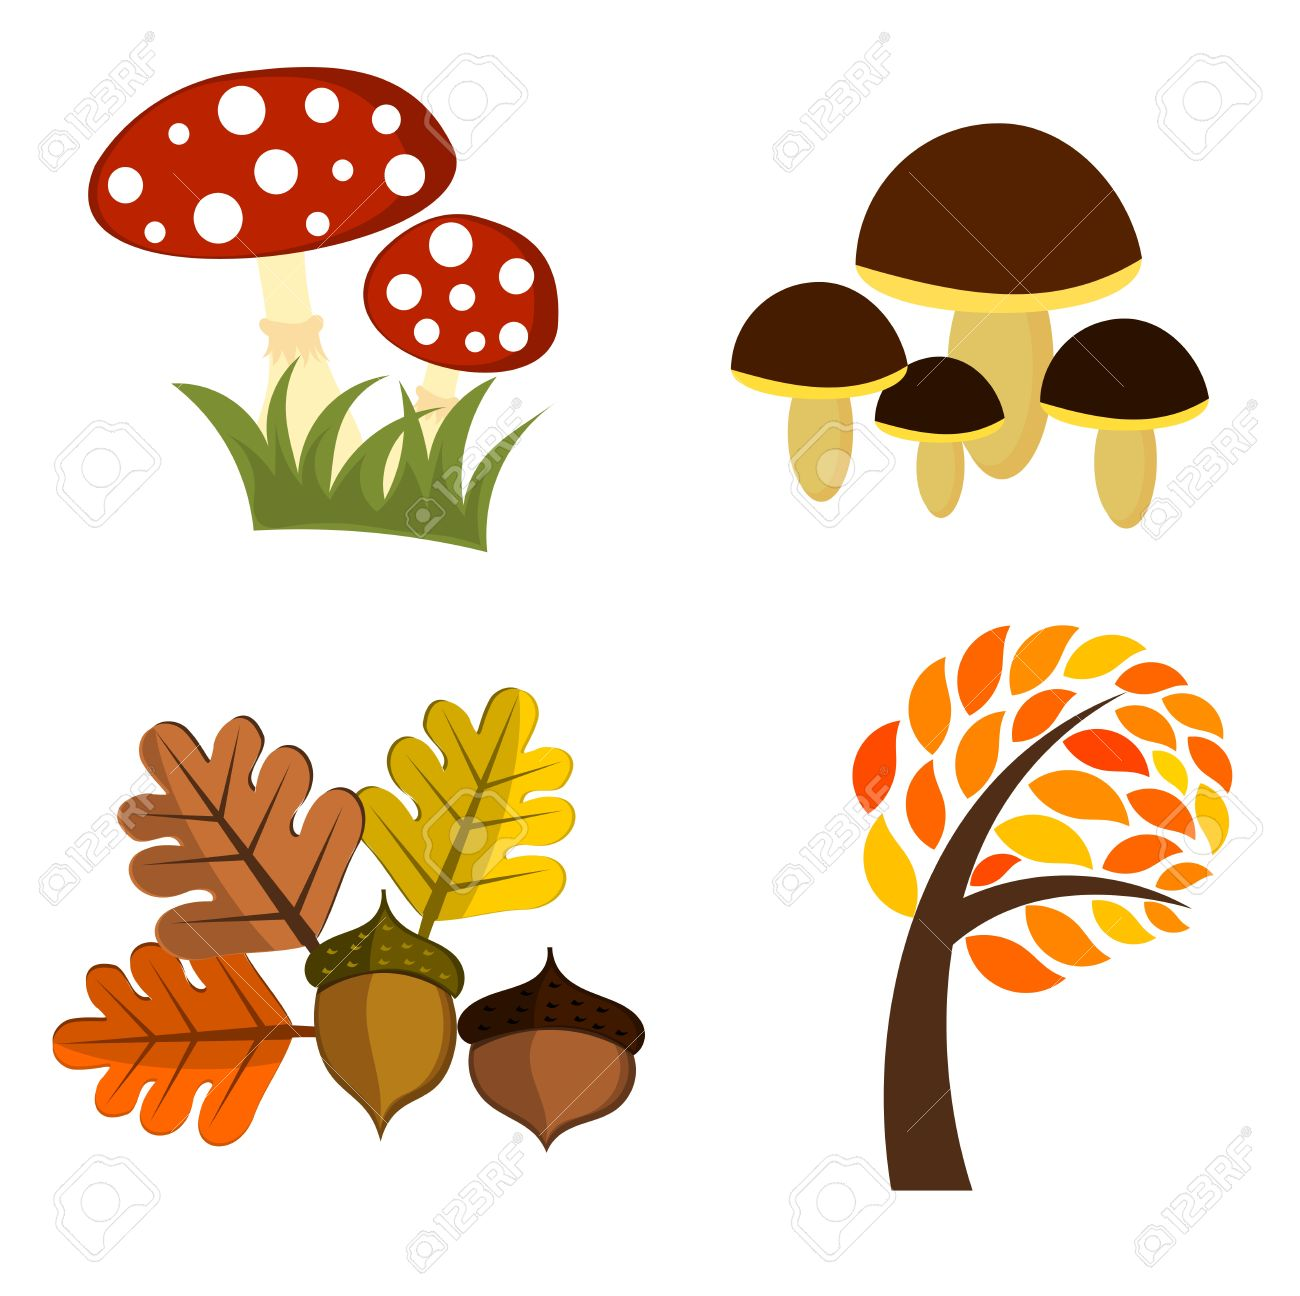 Autumn elements for design. Vector illustration Stock Vector - 11084308